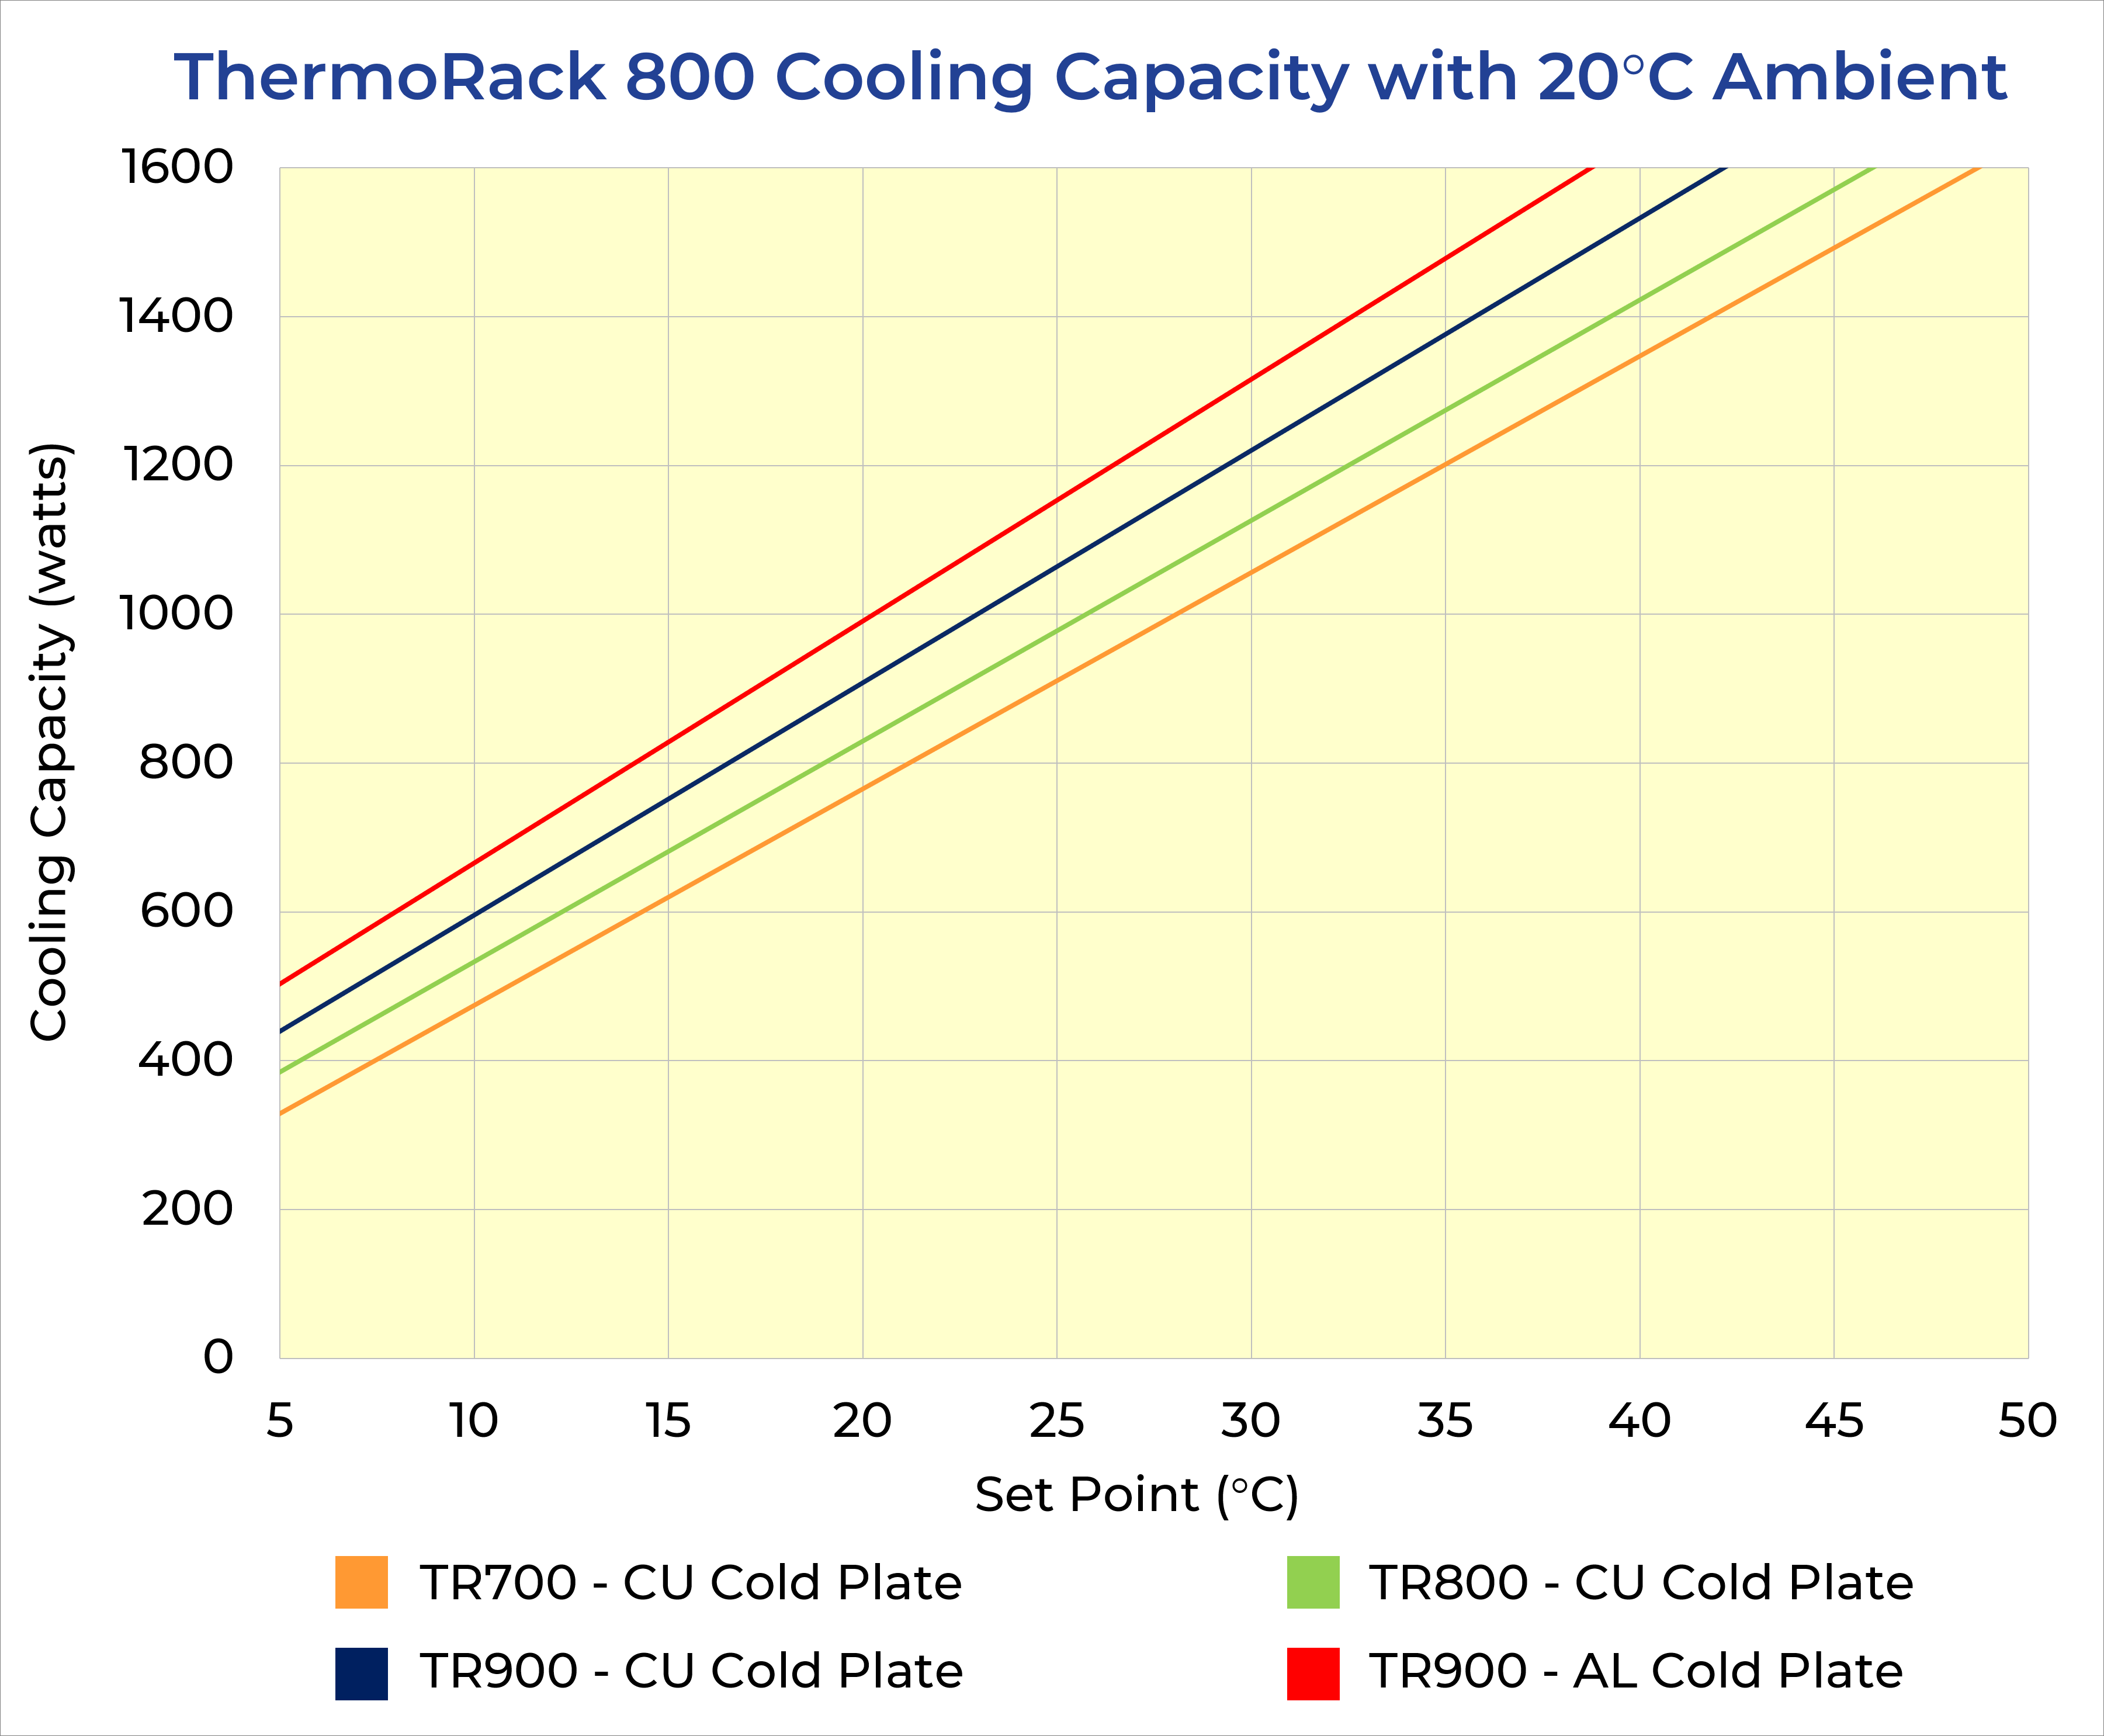 ThermoRack 800 Cooling Curves